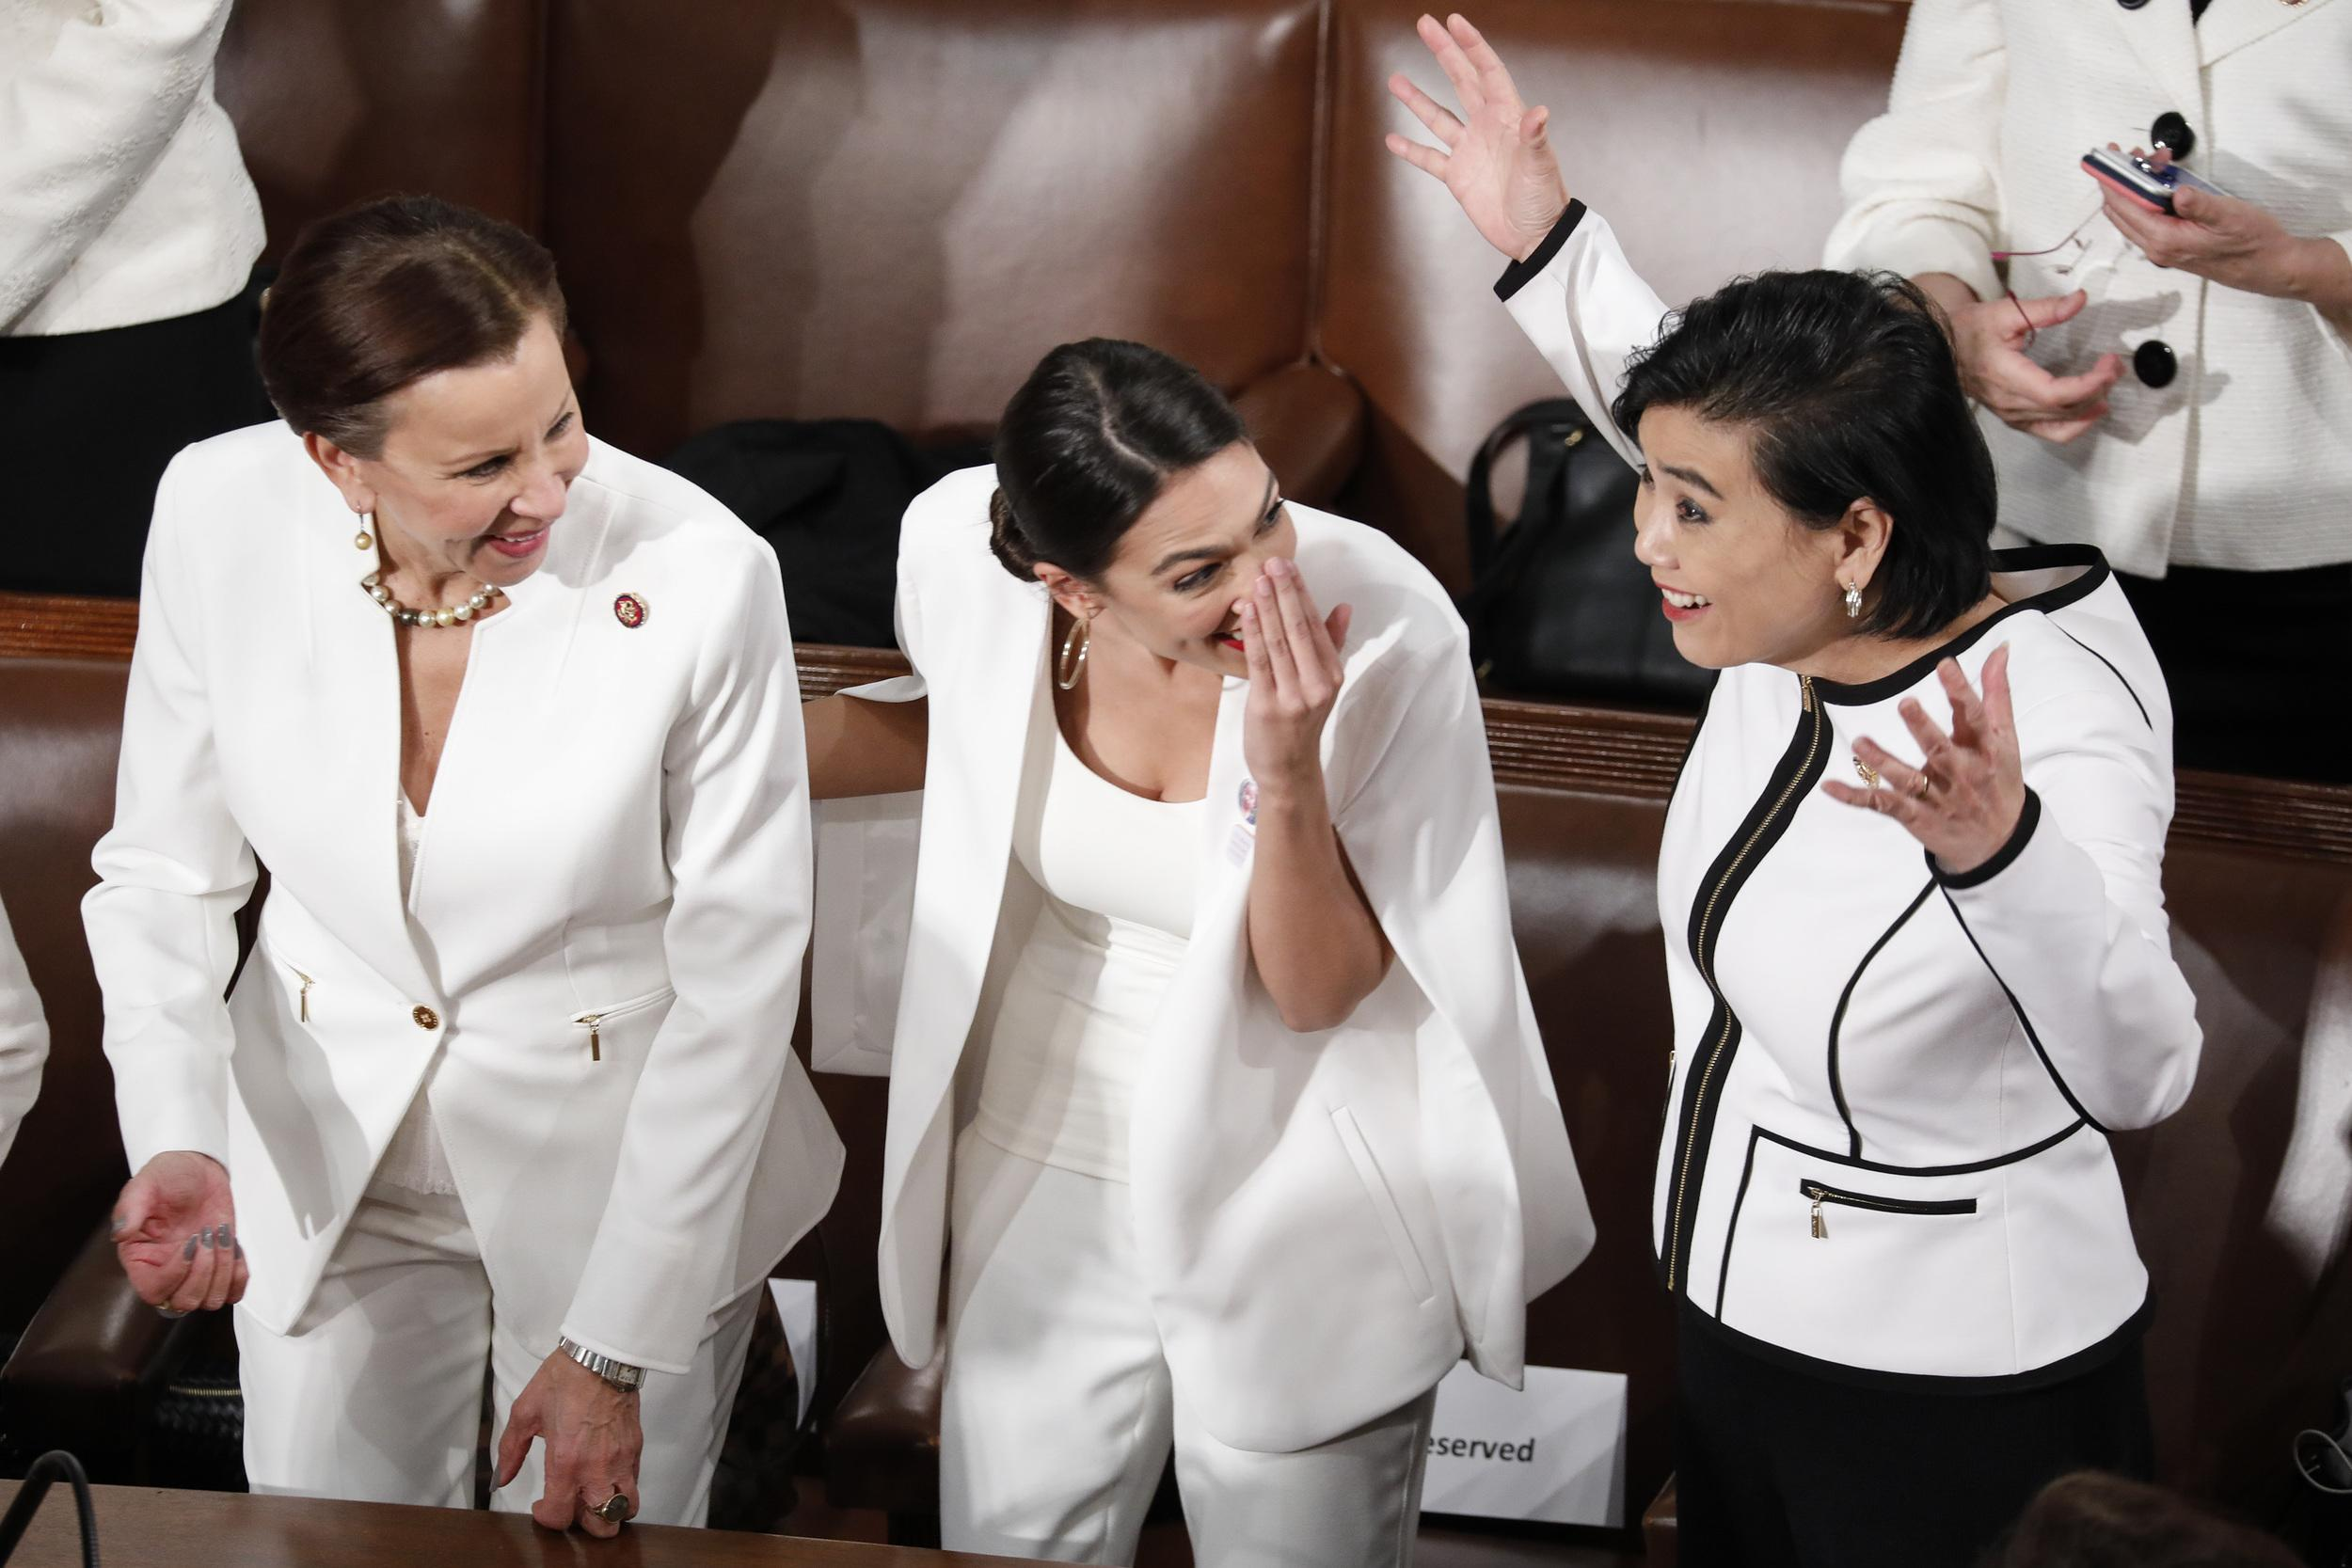 Representative Nydia Velazquez, a Democrat of New York, from left, Representative Alexandria Ocasio-Cortez, a Democrat of New York, and Representative Judy Chu, a Democrat of California, speak prior to a State of the Union address by U.S. President Donald Trump, not pictured, to a joint session of Congress at the U.S. Capitol in Washington, D.C., U.S., on Tuesday, Feb. 5, 2019. President Donald Trump cast his fight against illegal migration to the U.S. as a moral struggle, and charged in his second State of the Union address that partisan investigations threaten economic progress under his administration. Photographer: Aaron P. Bernstein/Bloomberg via Getty Images